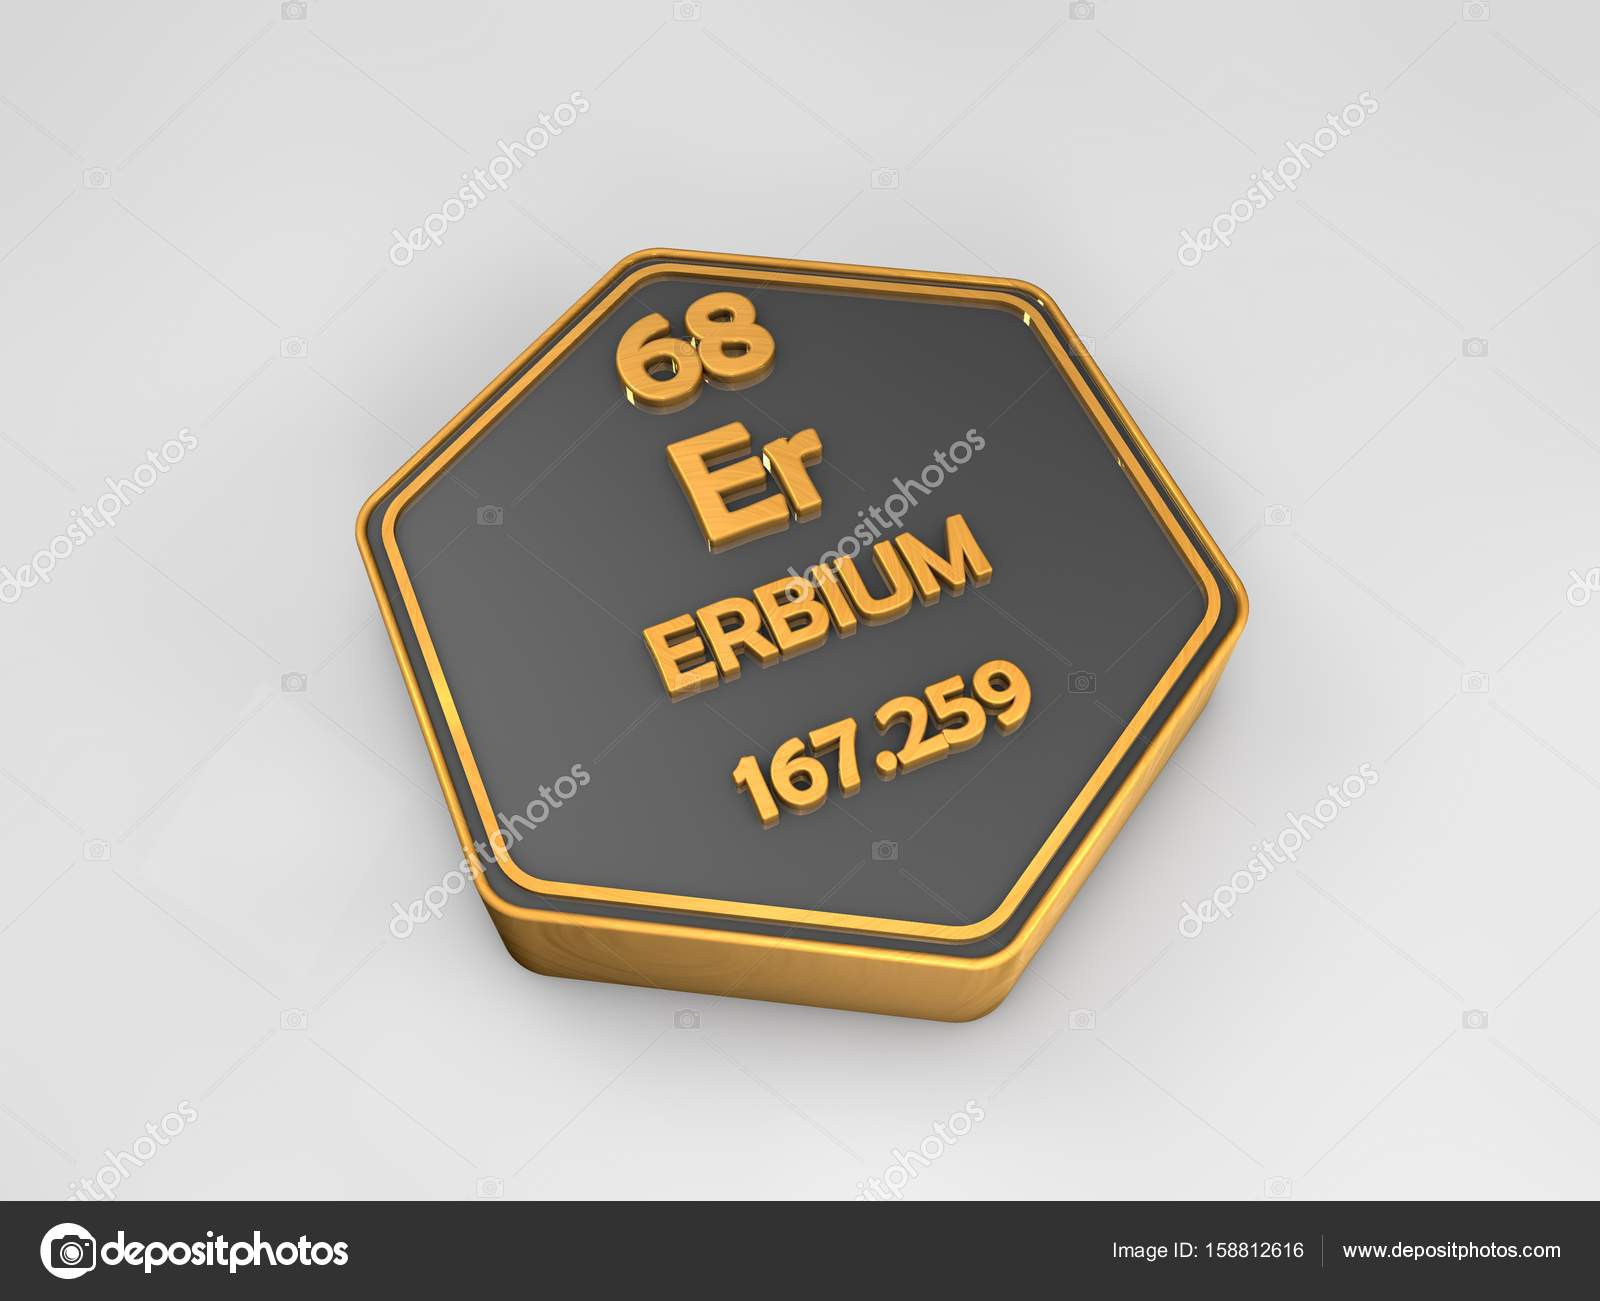 Er element periodic table images periodic table images er element periodic table choice image periodic table images erbium er chemical element periodic table hexagonal gamestrikefo Image collections